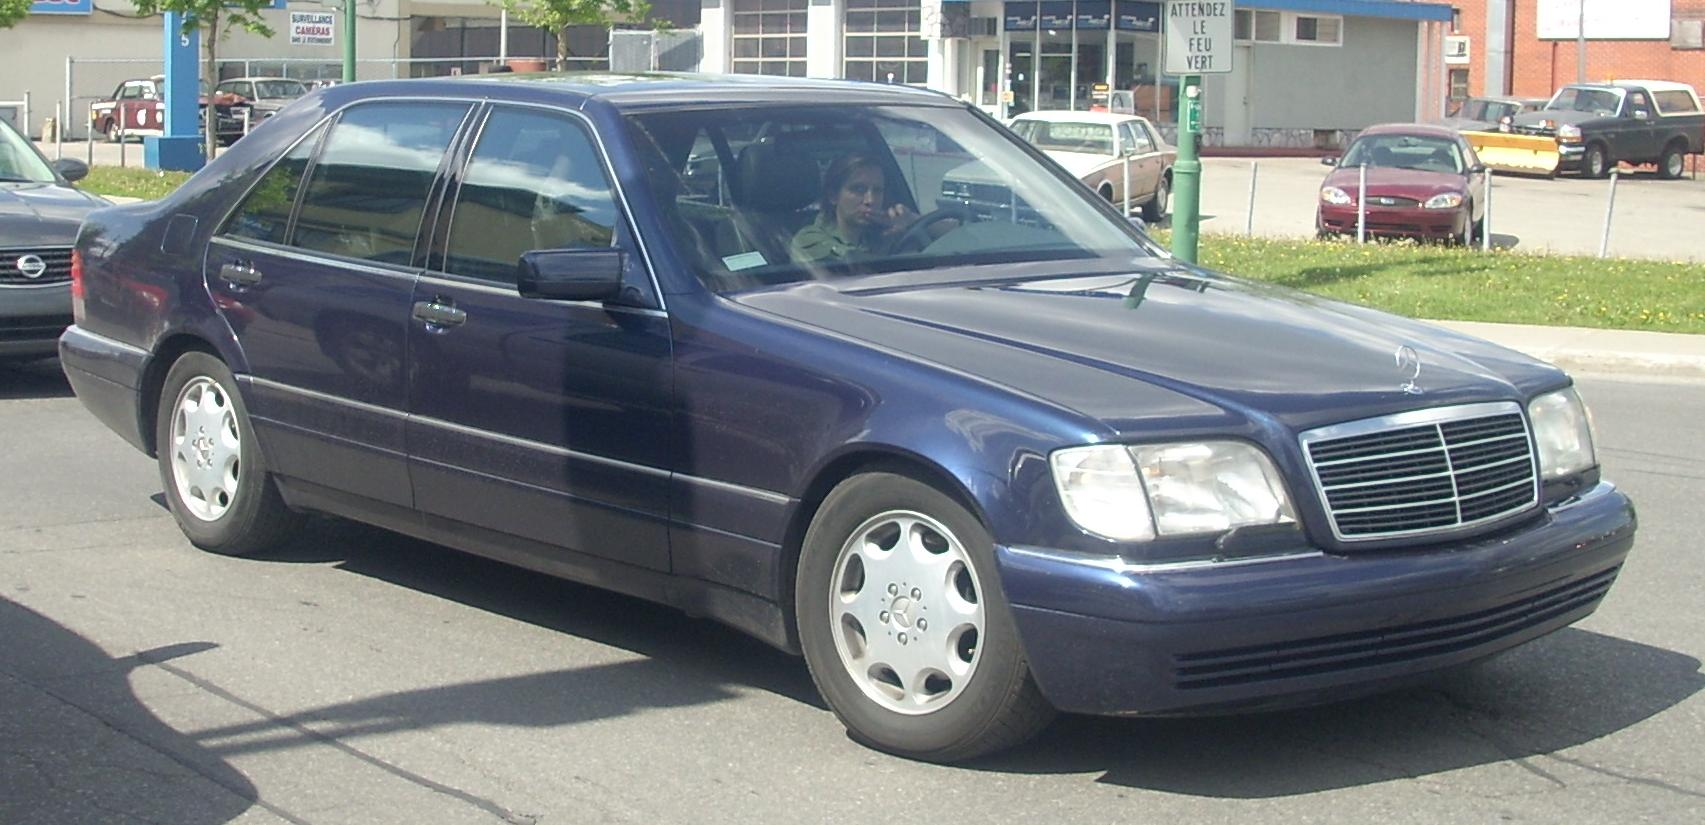 1996 mercedes benz s class information and photos zombiedrive 1996 mercedes benz s class 4 mercedes benz s class 4 fandeluxe Choice Image